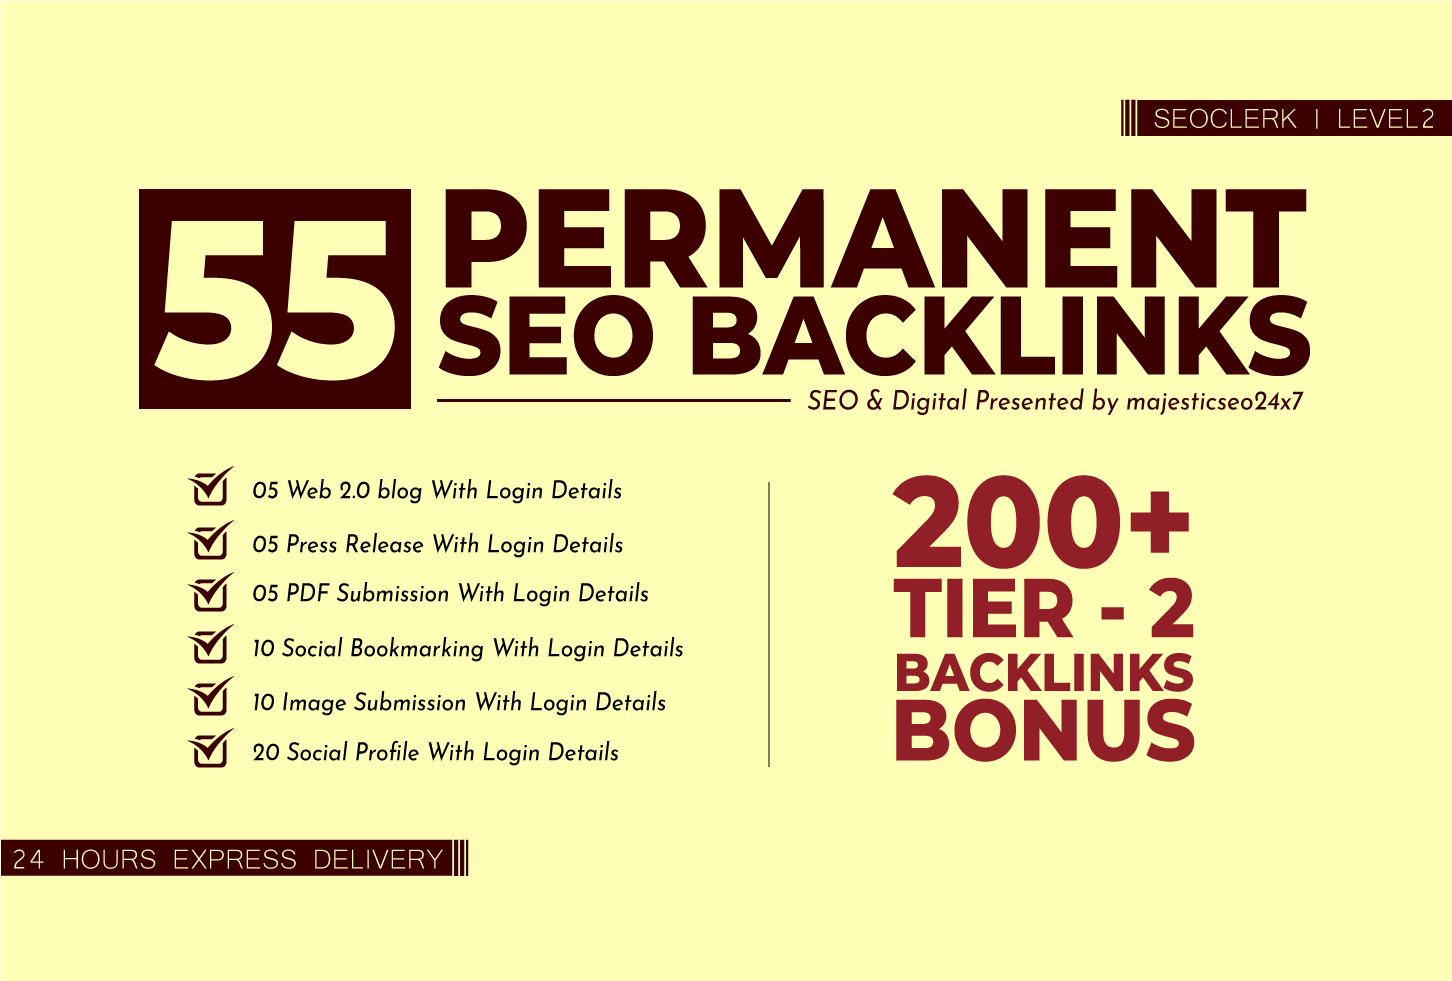 SUPER POWER PERMANENT SEO BACKLINKS WITH LINK BUILDING SERVICE